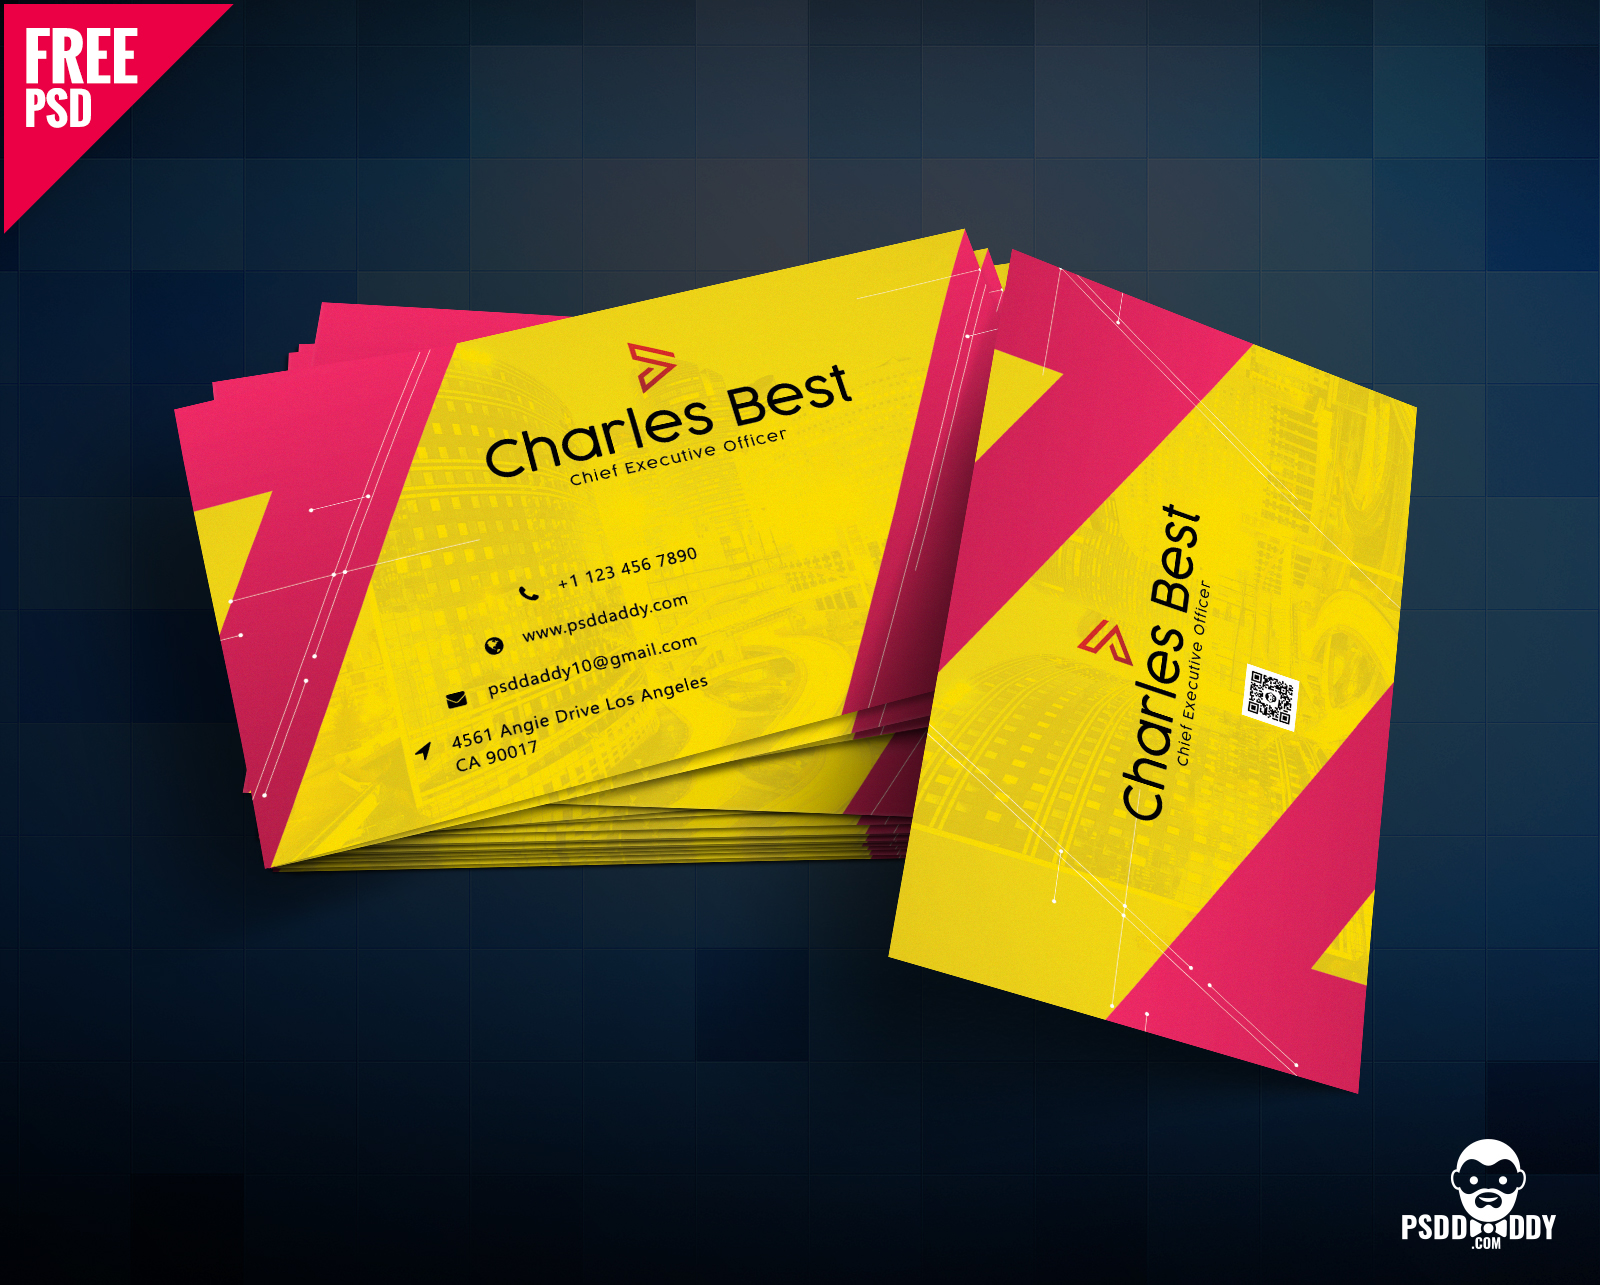 Creative business card template psd free download psddaddy business card design business card design templates business card dimensions business card holder fbccfo Choice Image